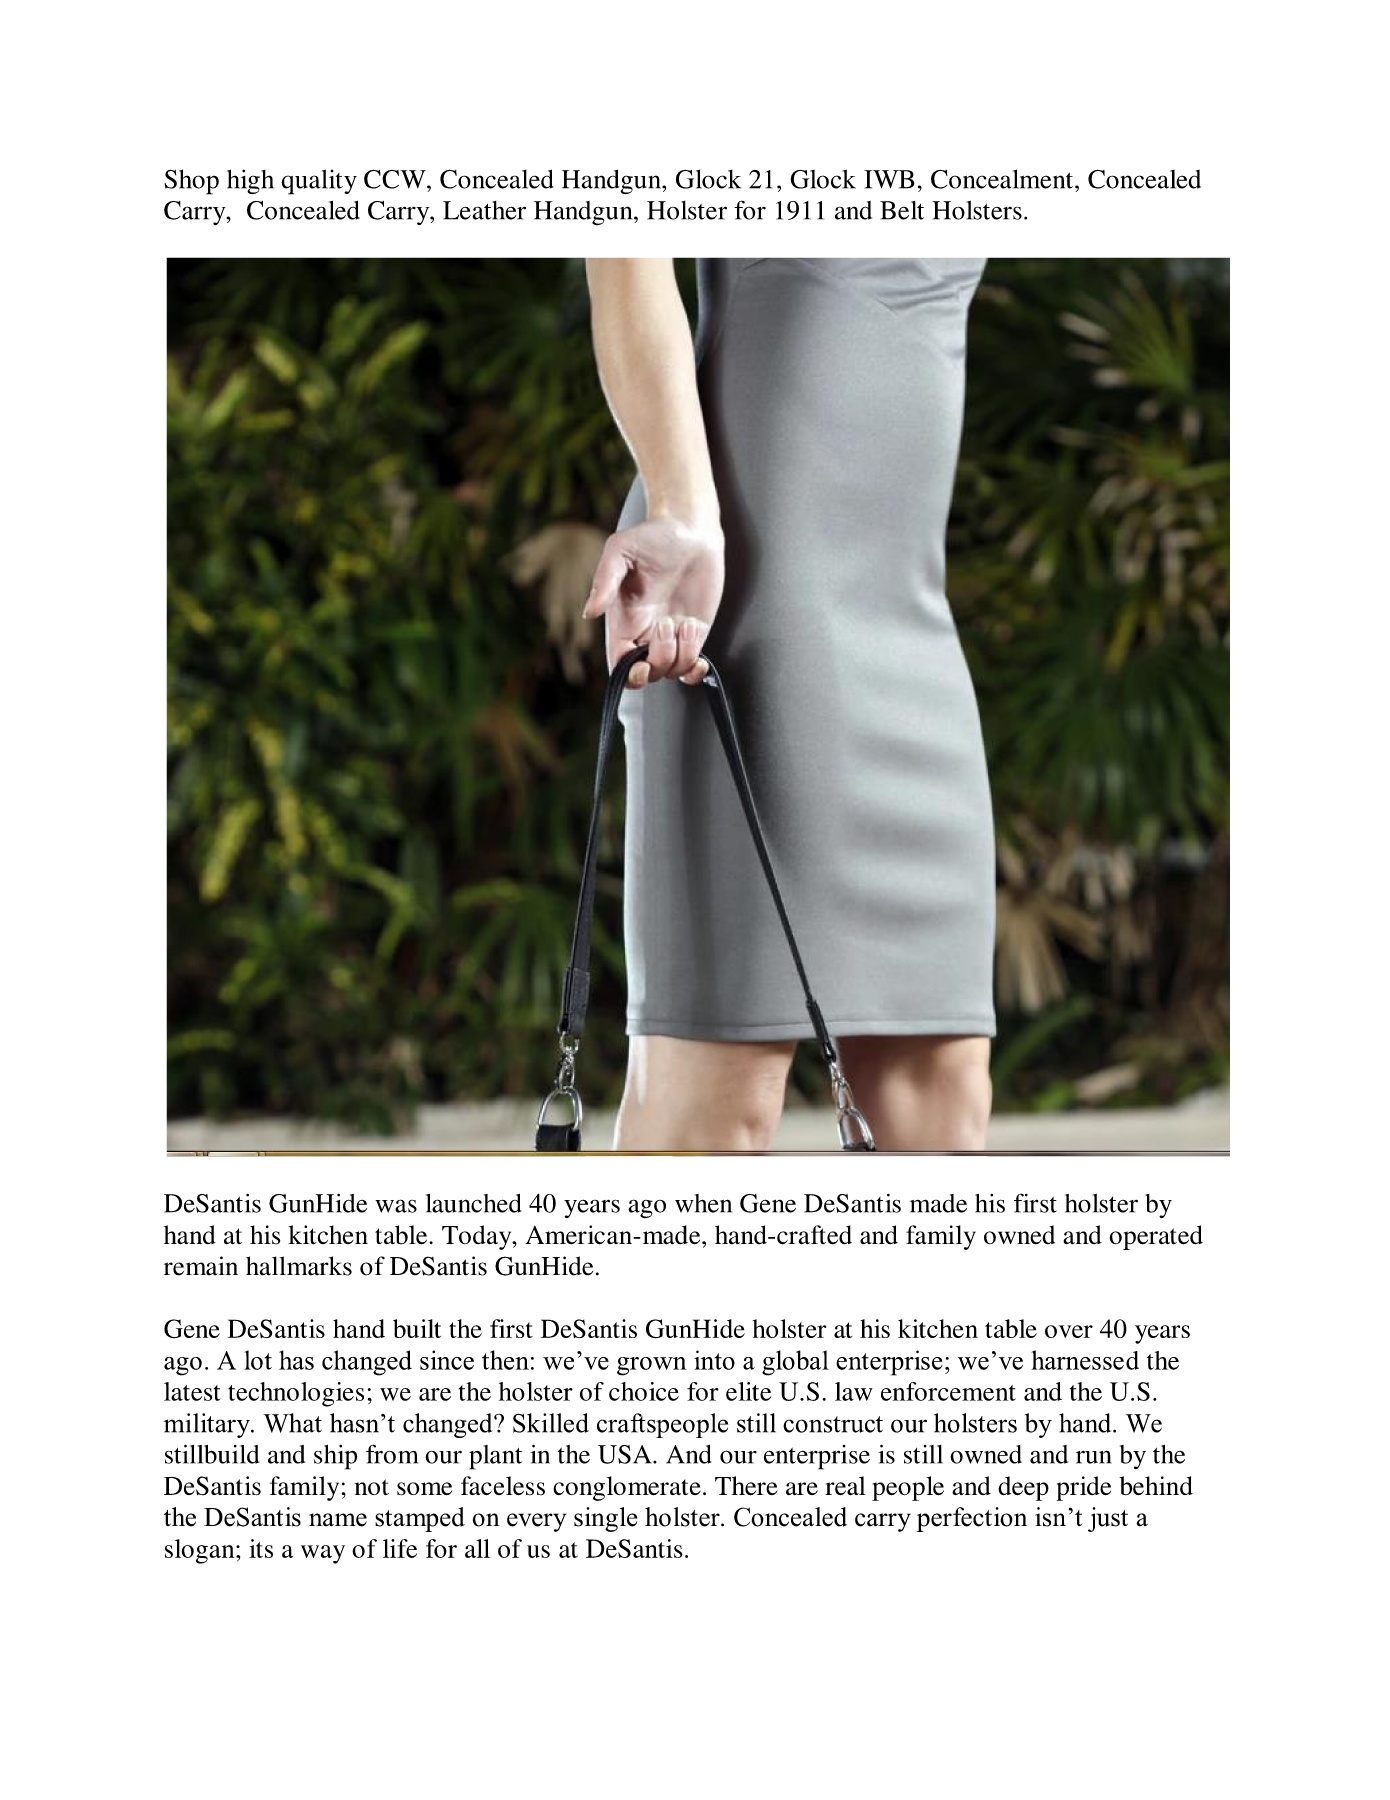 Concealed Handgun and Weapons Holster Pages 1 - 3 - Text